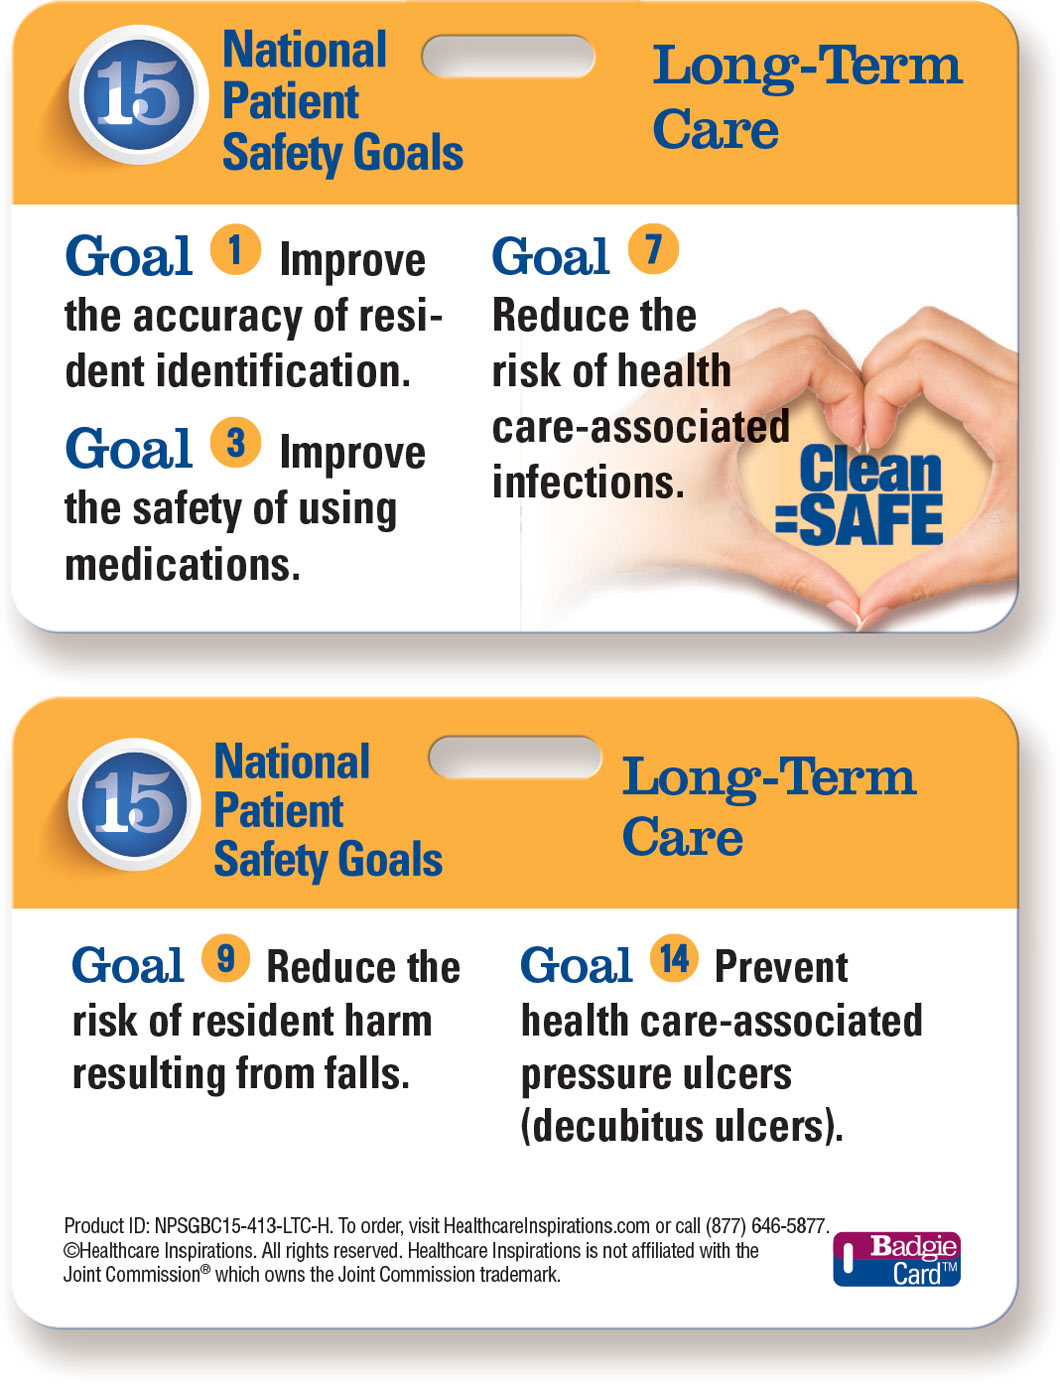 National Patient Safety Goals Pictures to Pin on Pinterest ...